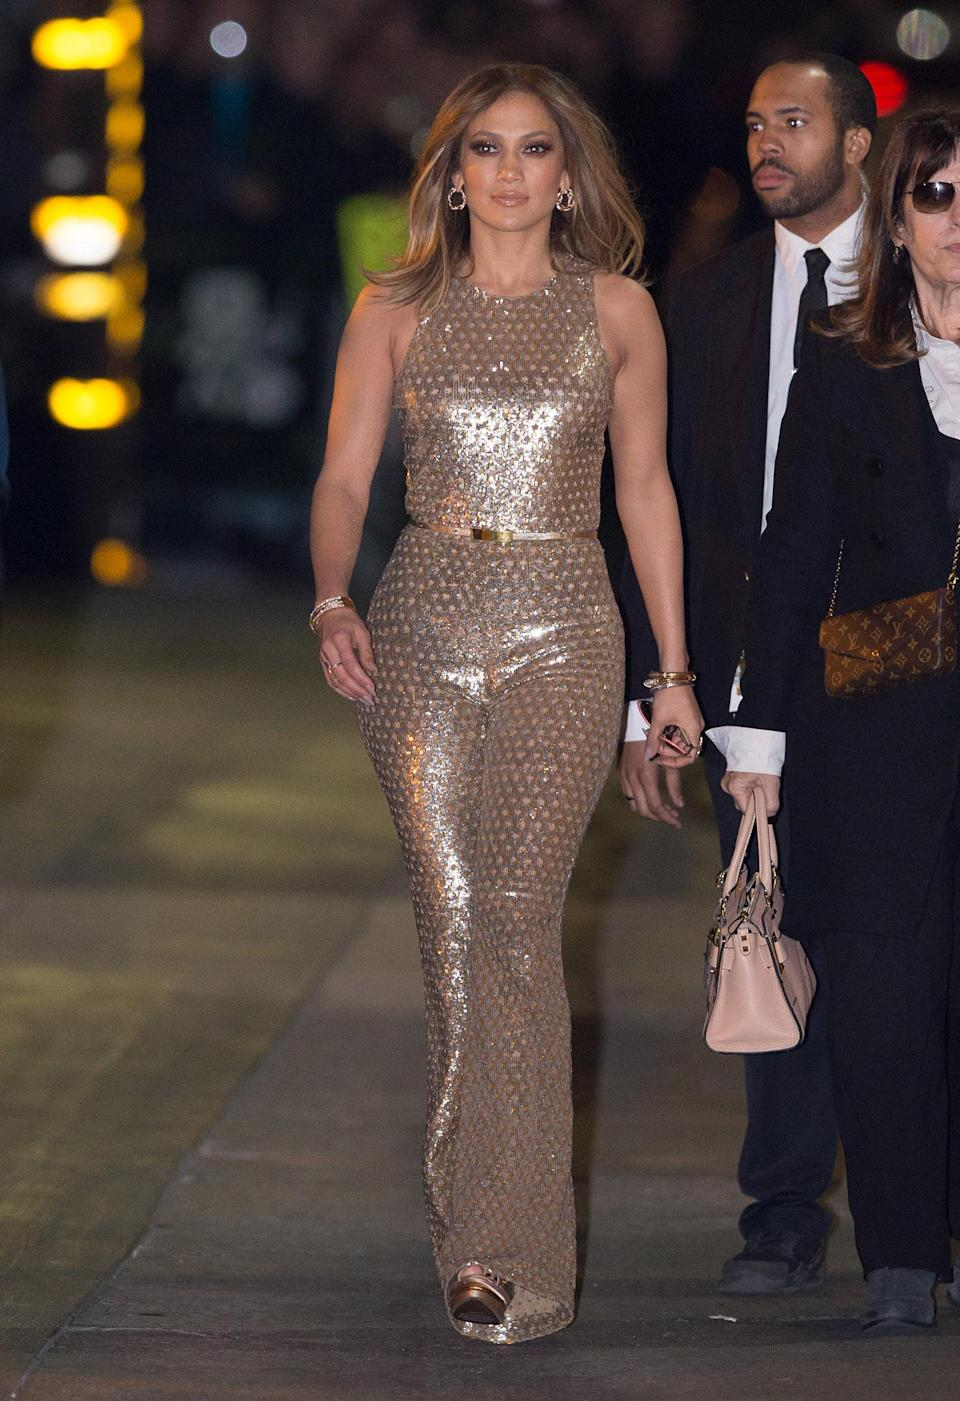 <p>J.Lo is no stranger to a killer jumpsuit. The singer rocked this gold number on <em>Jimmy Kimmel Live</em> in early 2016. (Photo: RB/Bauer-Griffin/GC Images) </p>